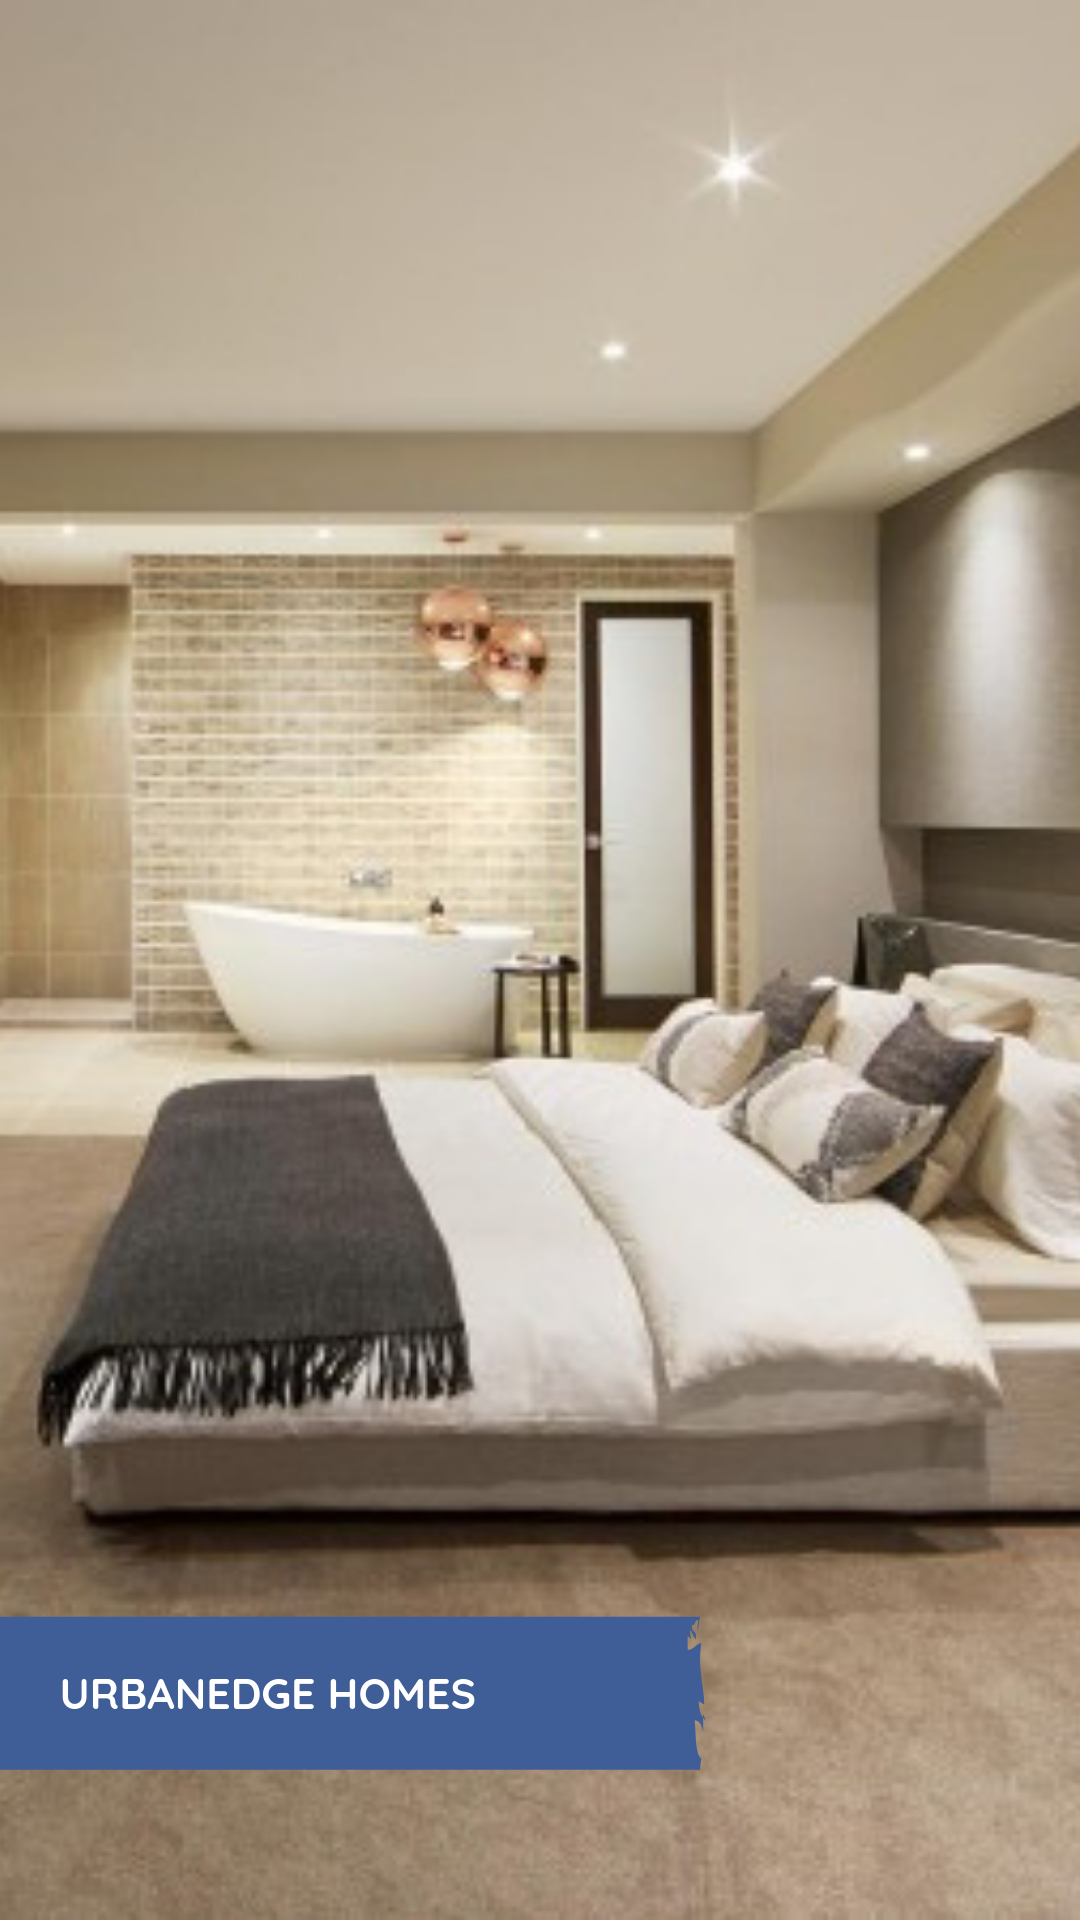 Home Design Ideas Australia: What A View! Stunning Master Bedroom In The Sogo By